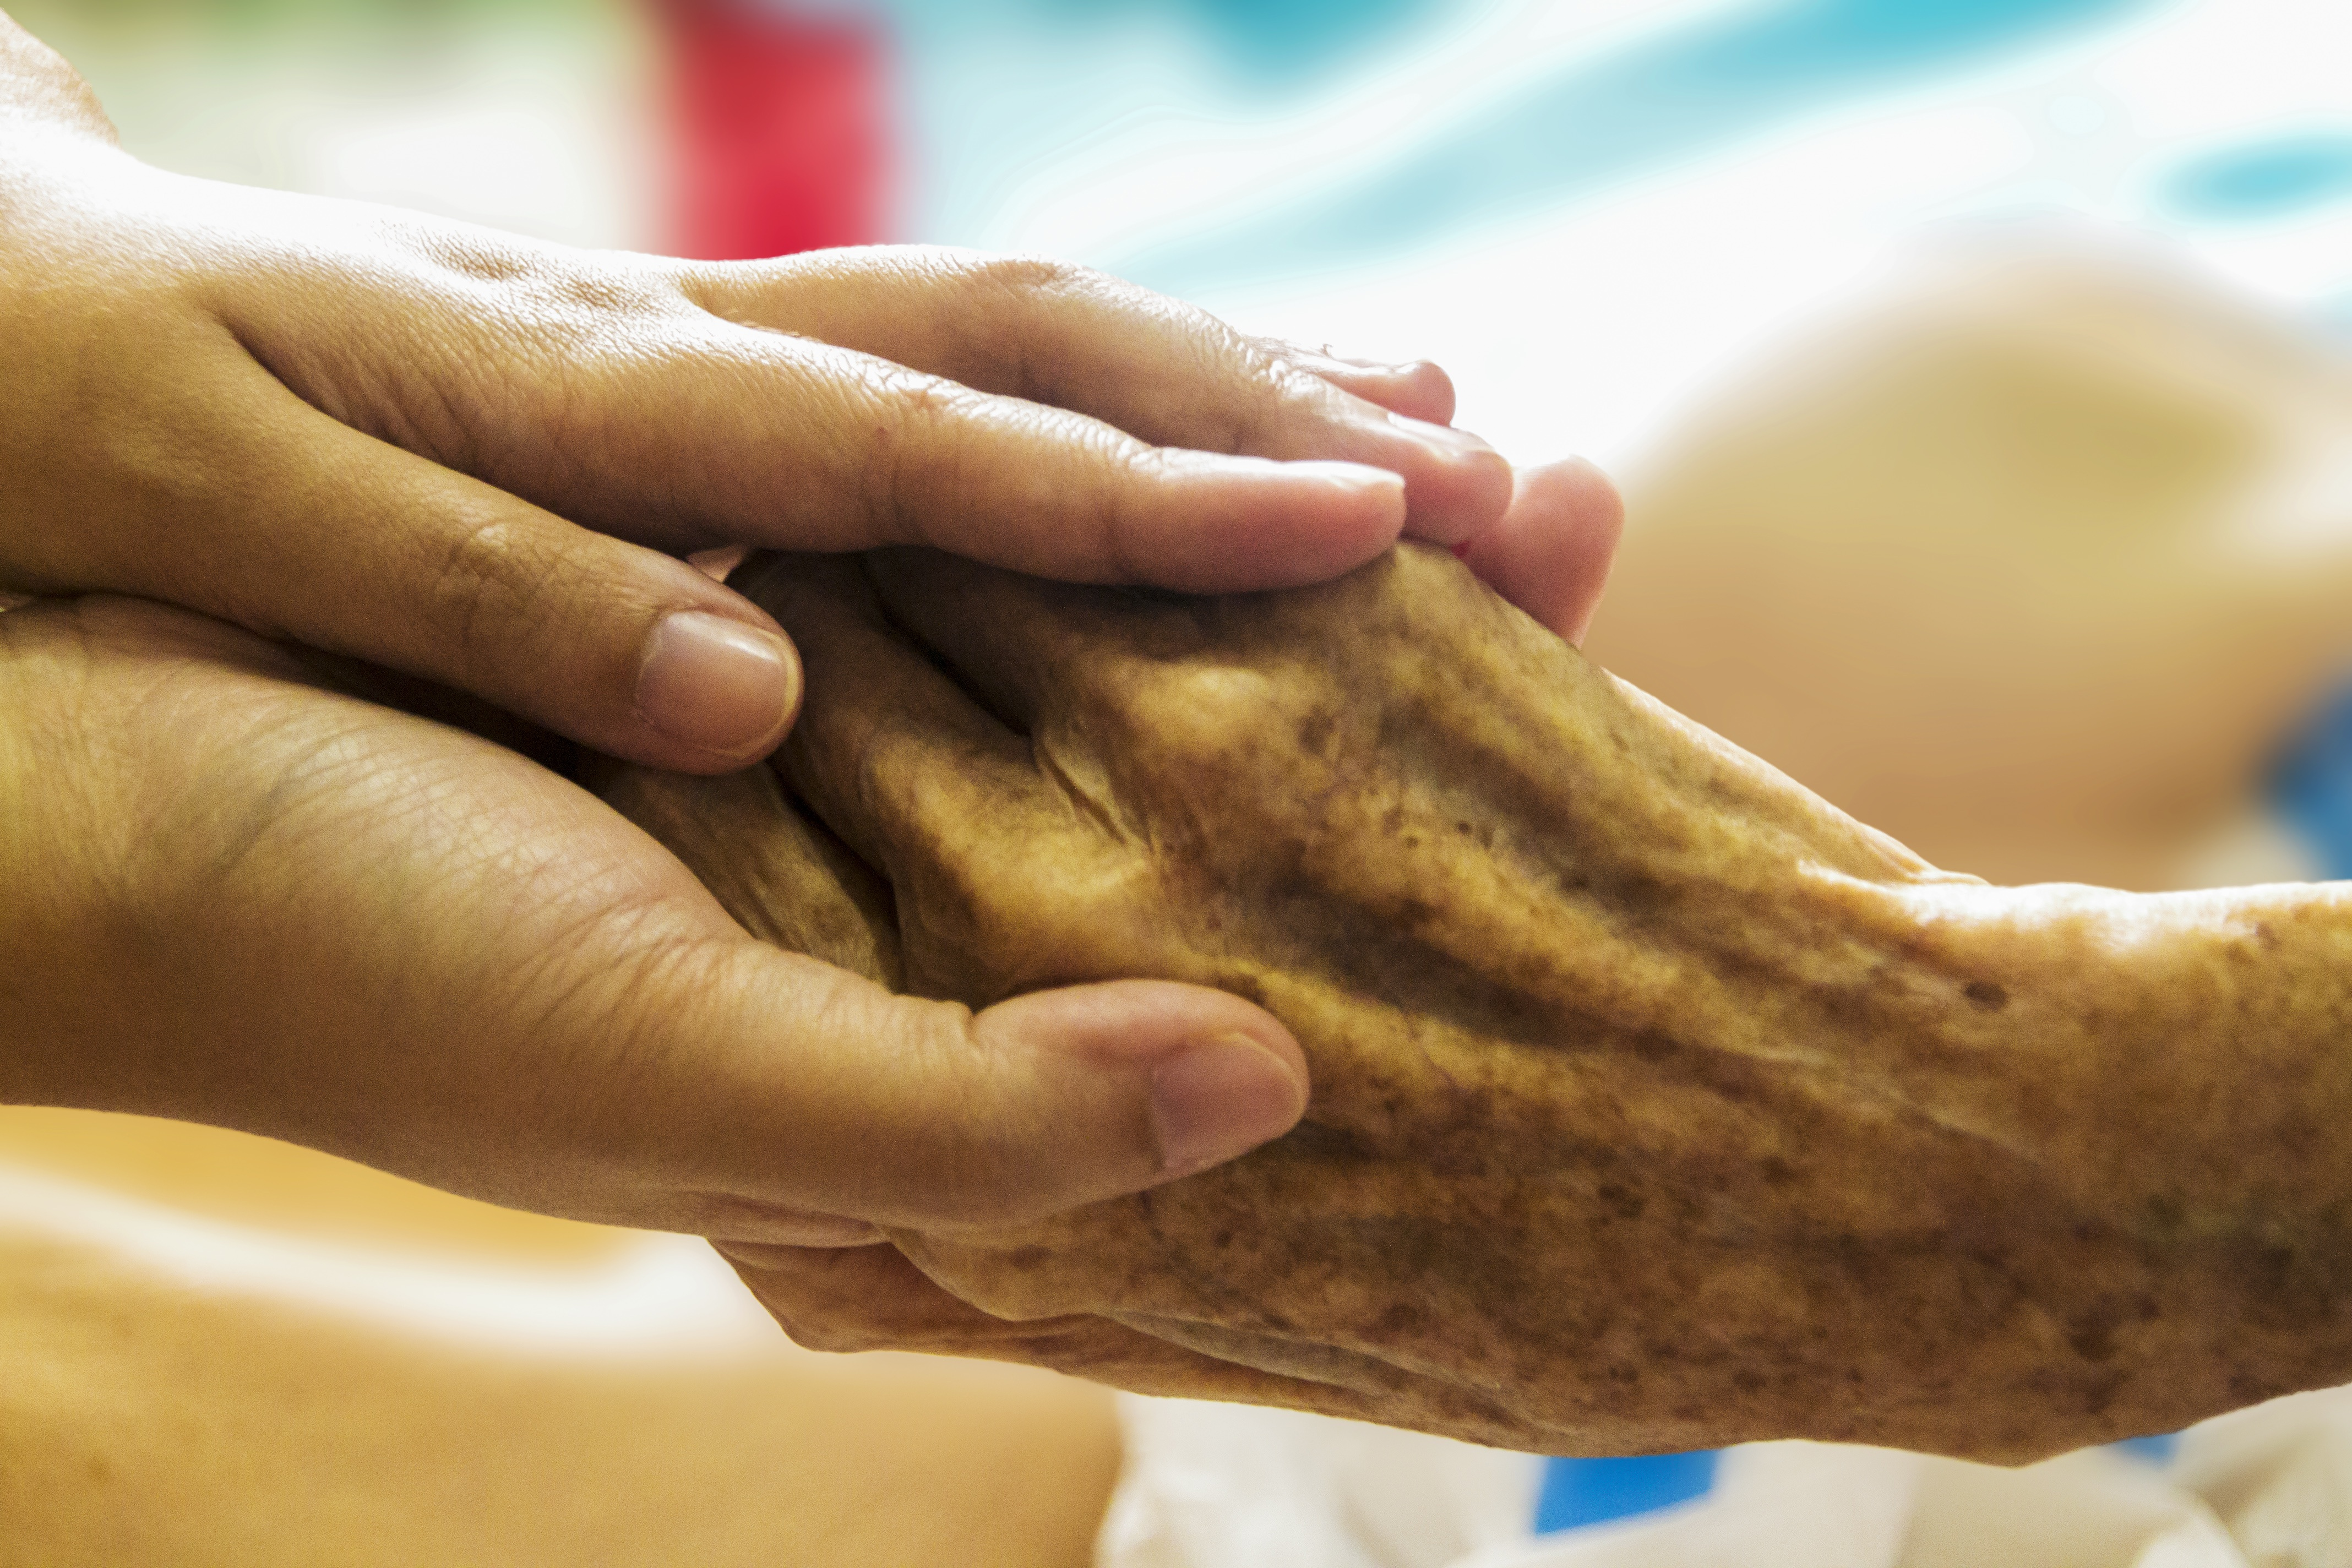 younger hands holding an aged hand.